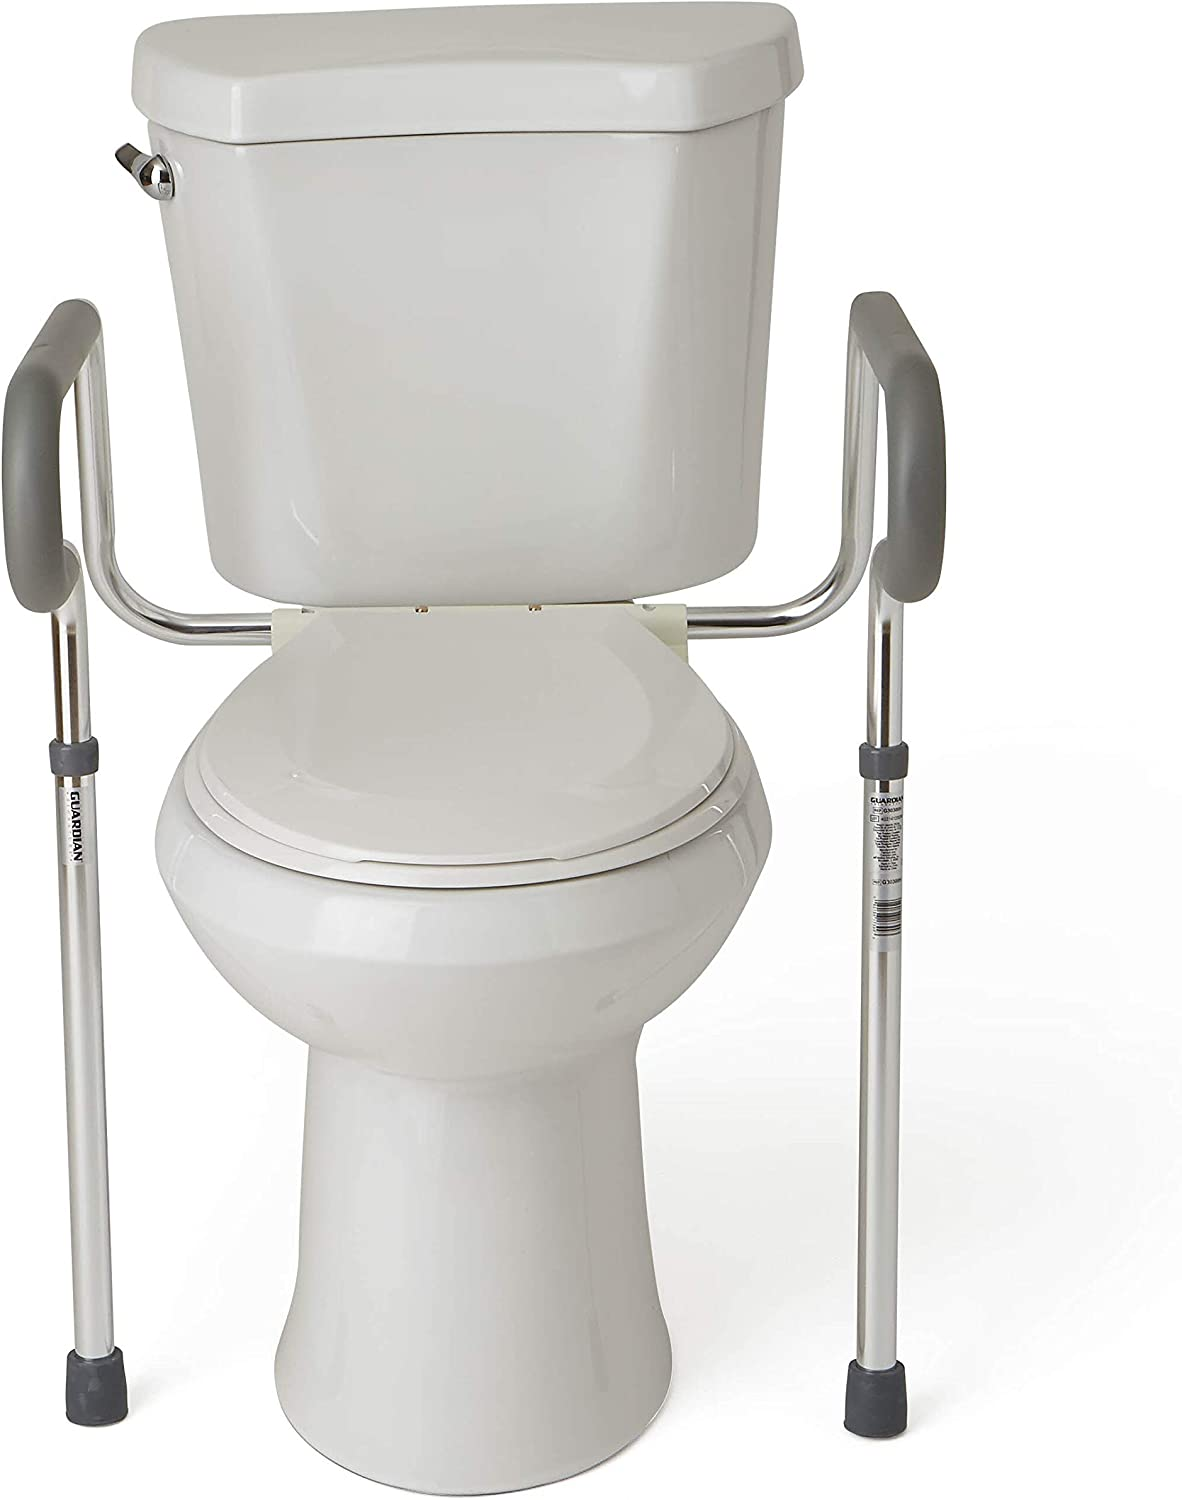 Medline's Guardian Toilet Safety Rail with Adjustable Height for Bathroom Safety, Toilet Assist, and Grab Bar: Health & Personal Care